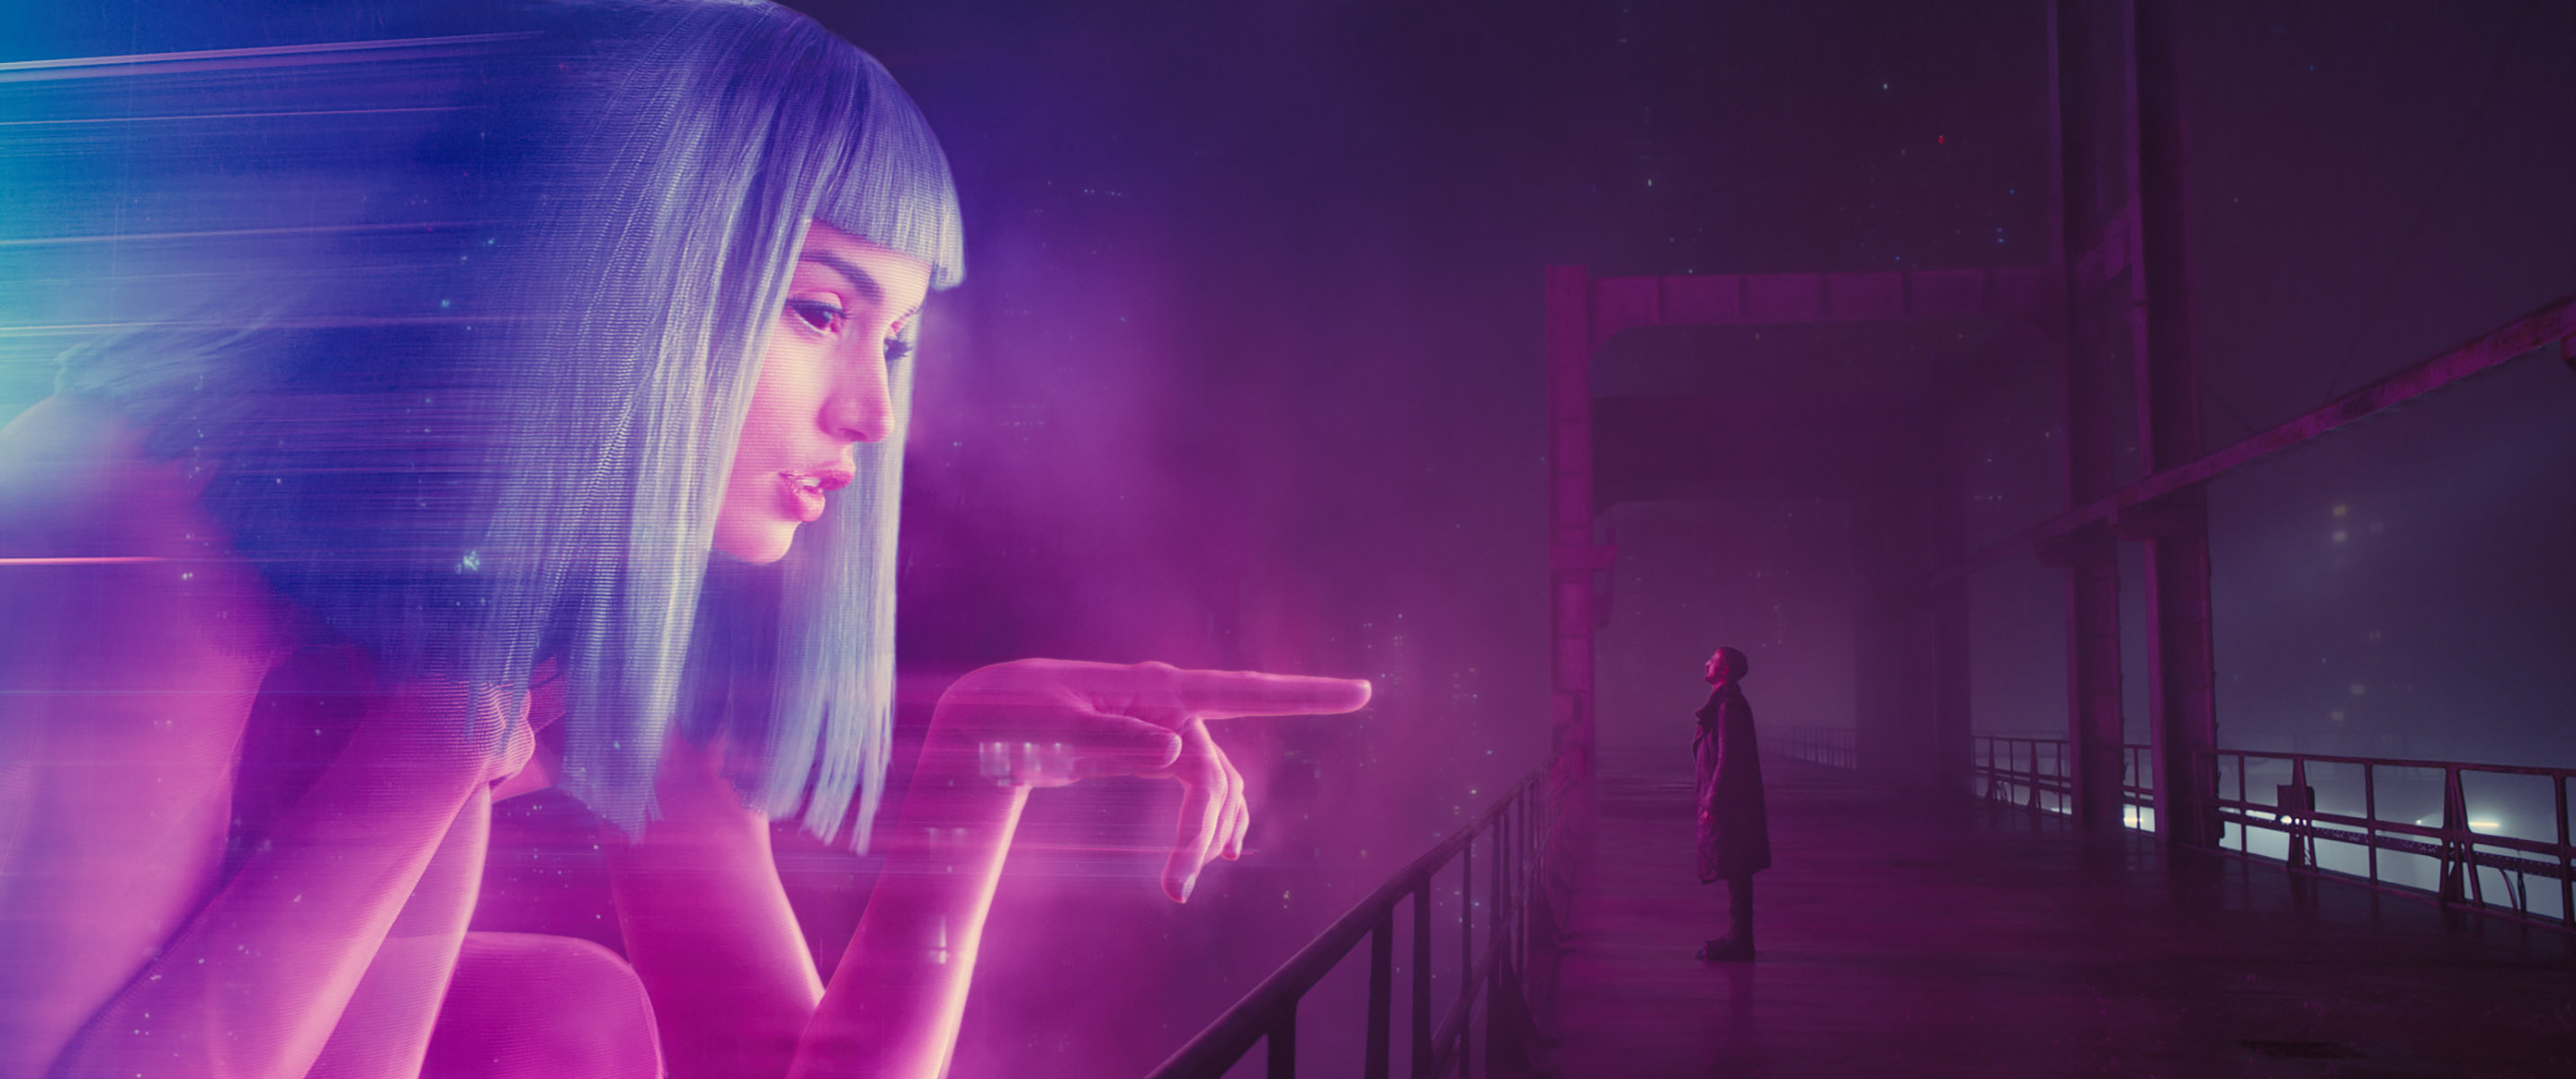 https://cinemaplanet.pt/wp-content/uploads/2017/10/blade-runner-2049.jpg